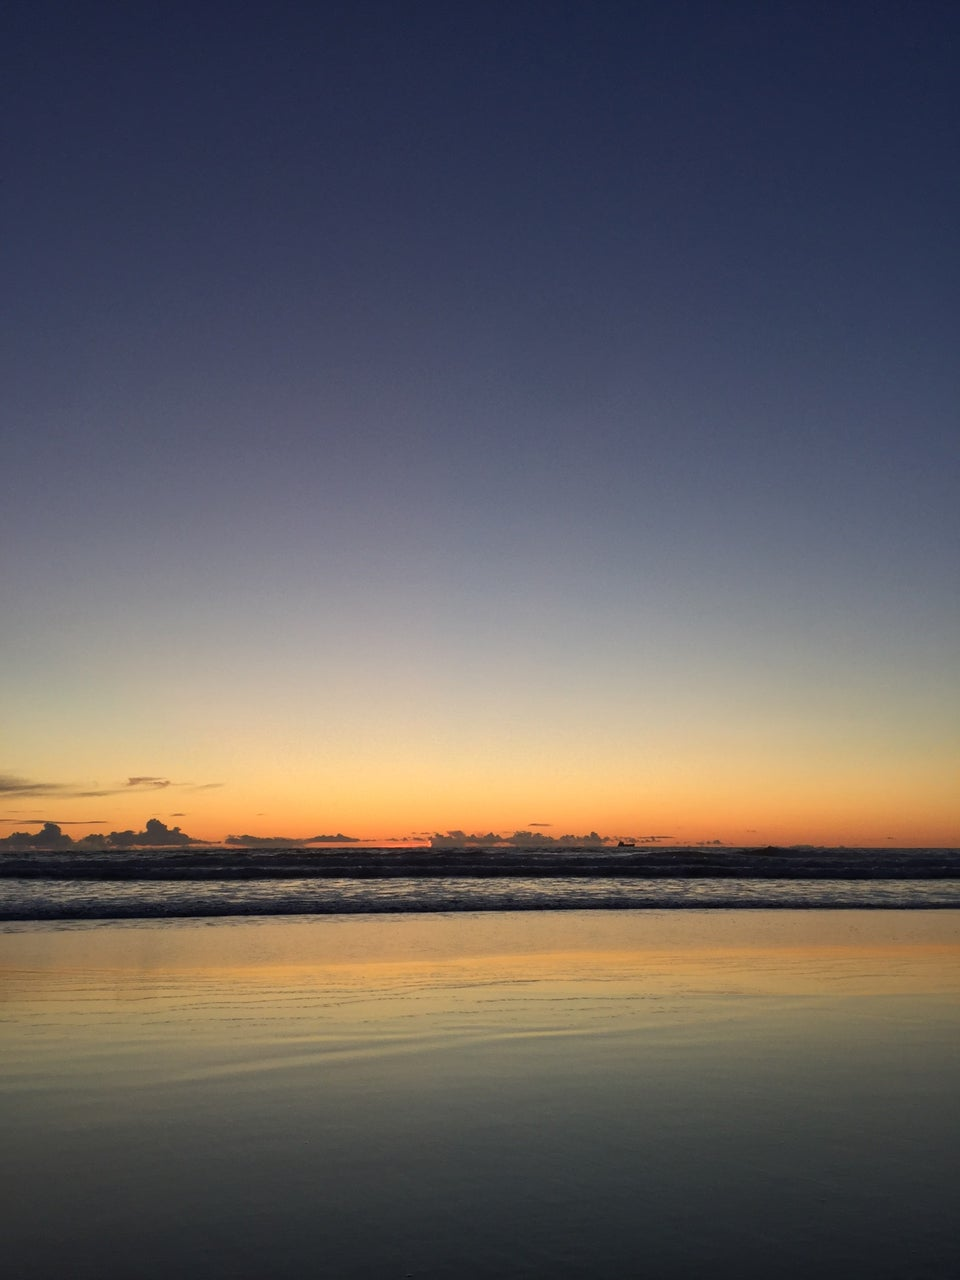 Clear skies just after sunset above waves crashing at Ocean Beach, wet sand reflecting the orange horizon and color gradients in the sky.